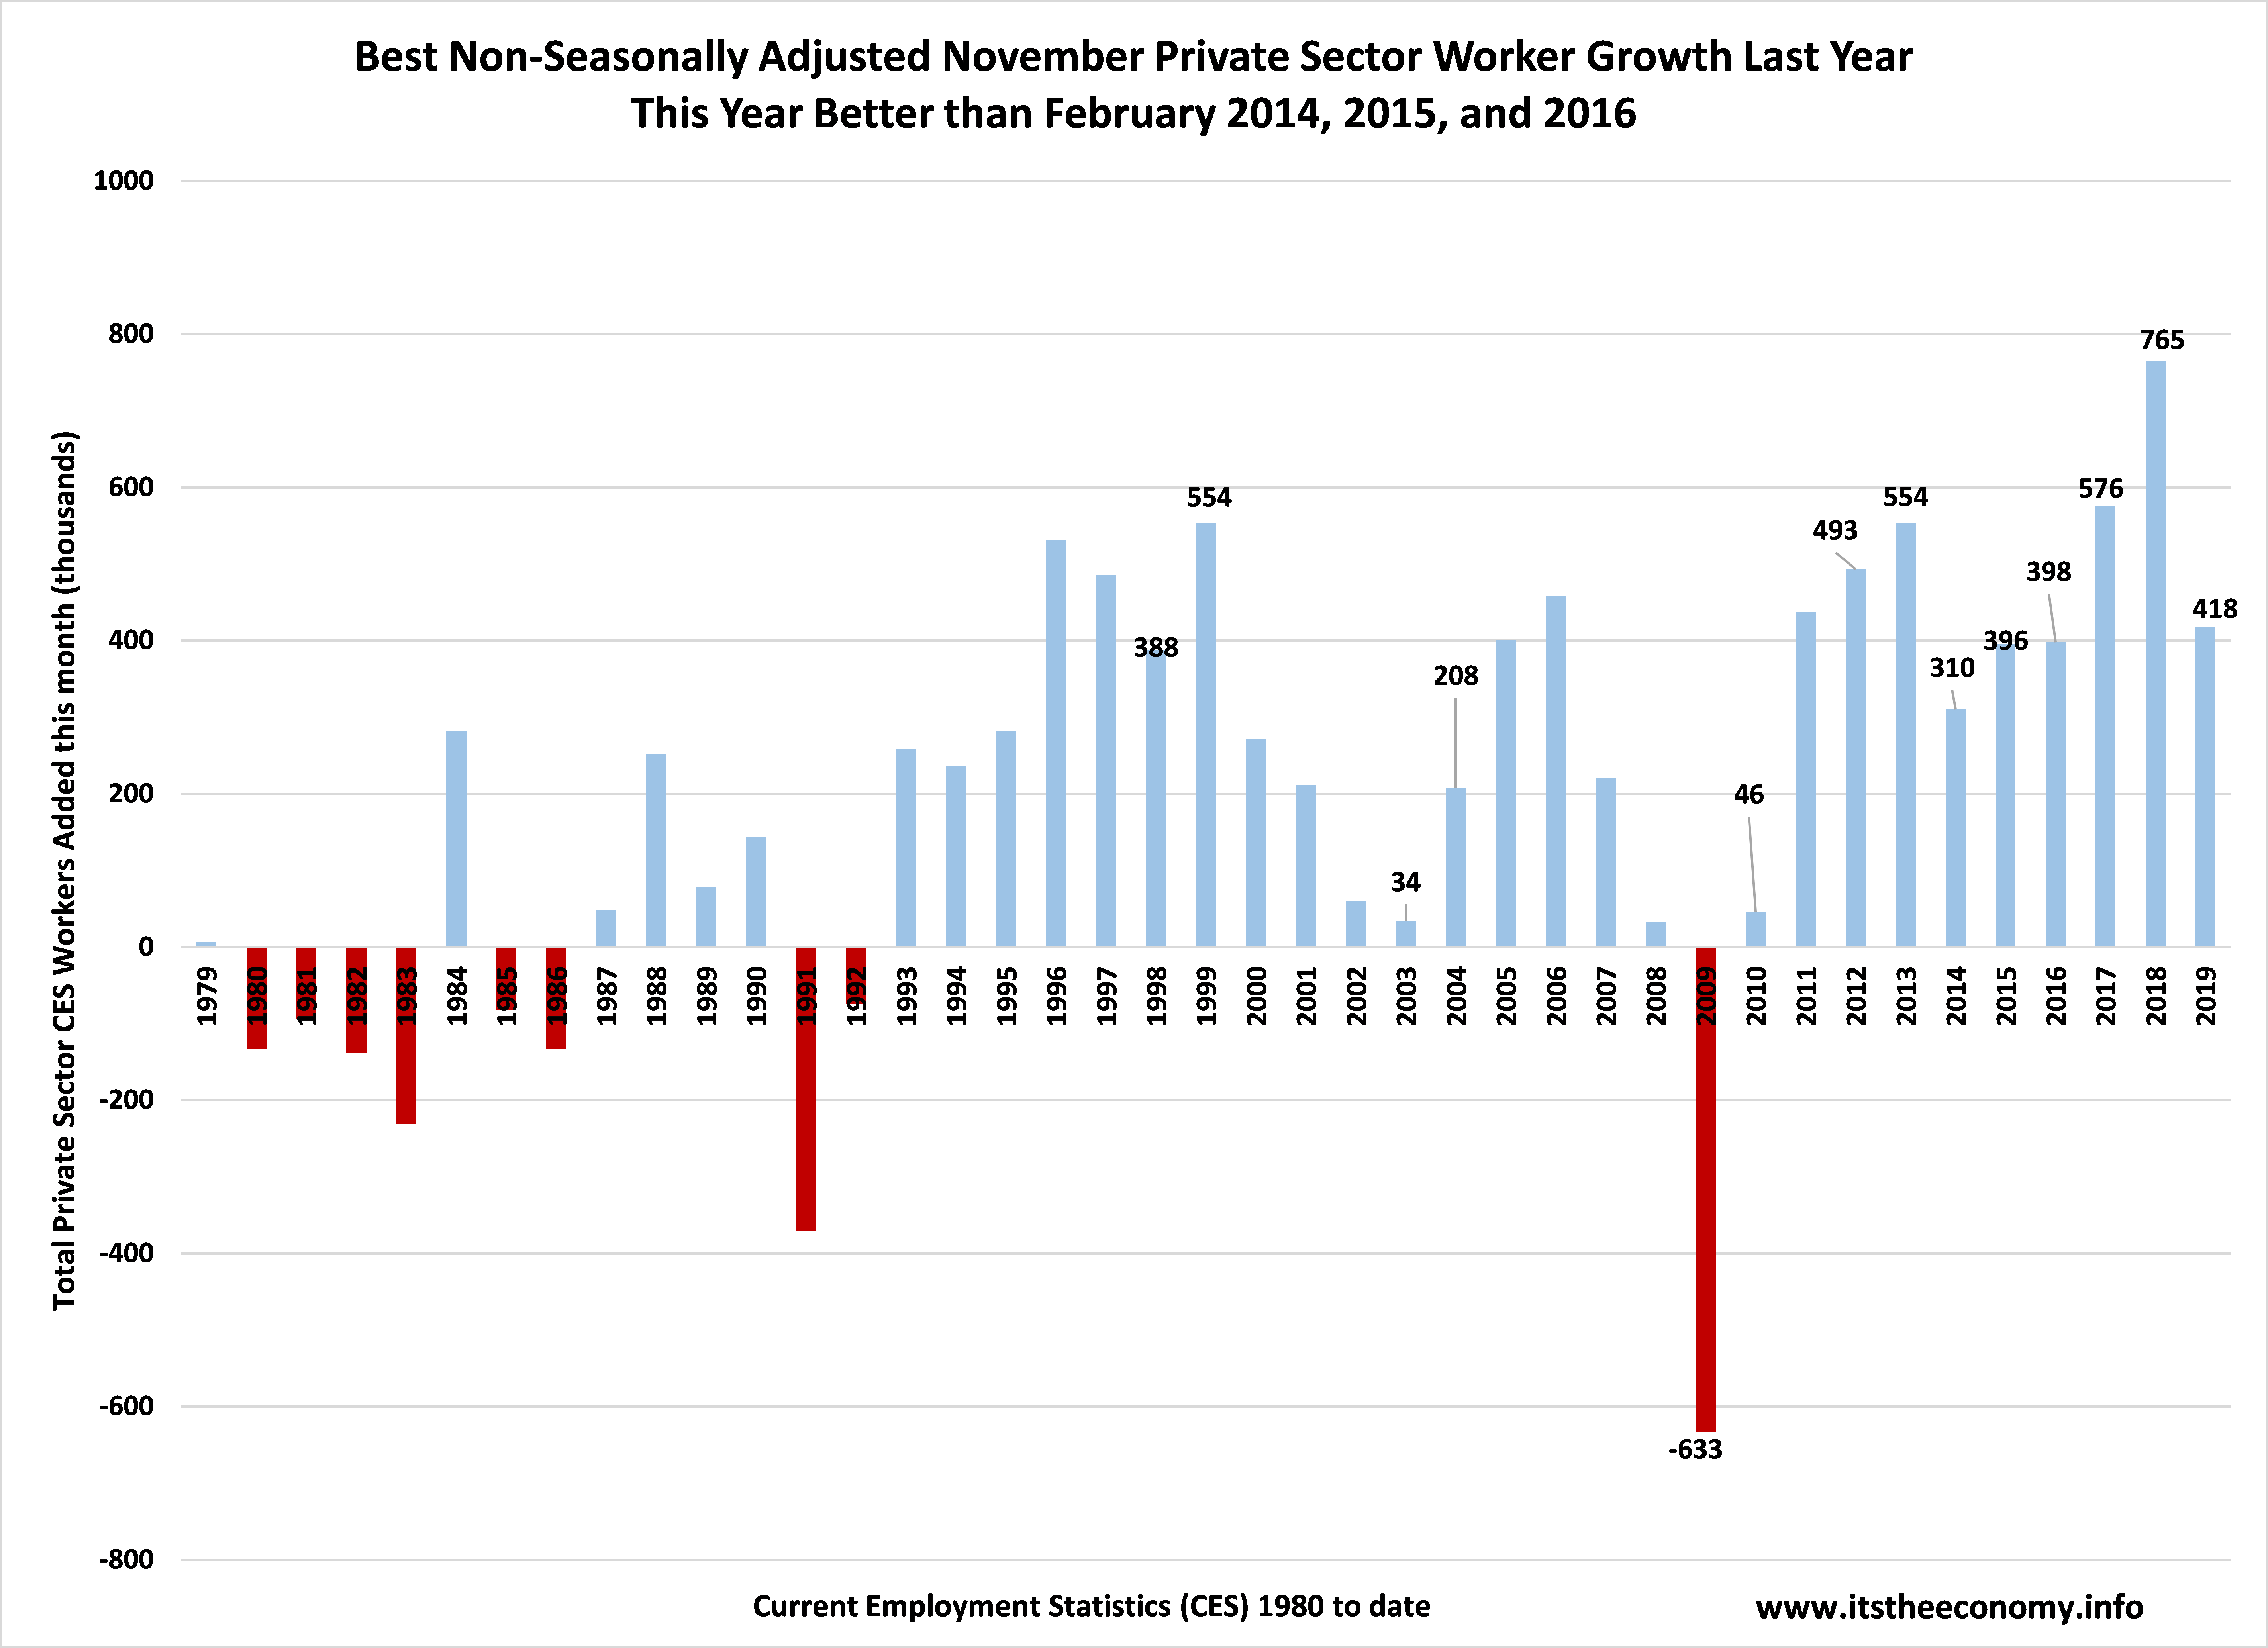 We saw better non-seasonally adjusted Current Employment Statistics (CES) worker growth recorded than during February 2015, 2015, or 2016. That was not what was reported.